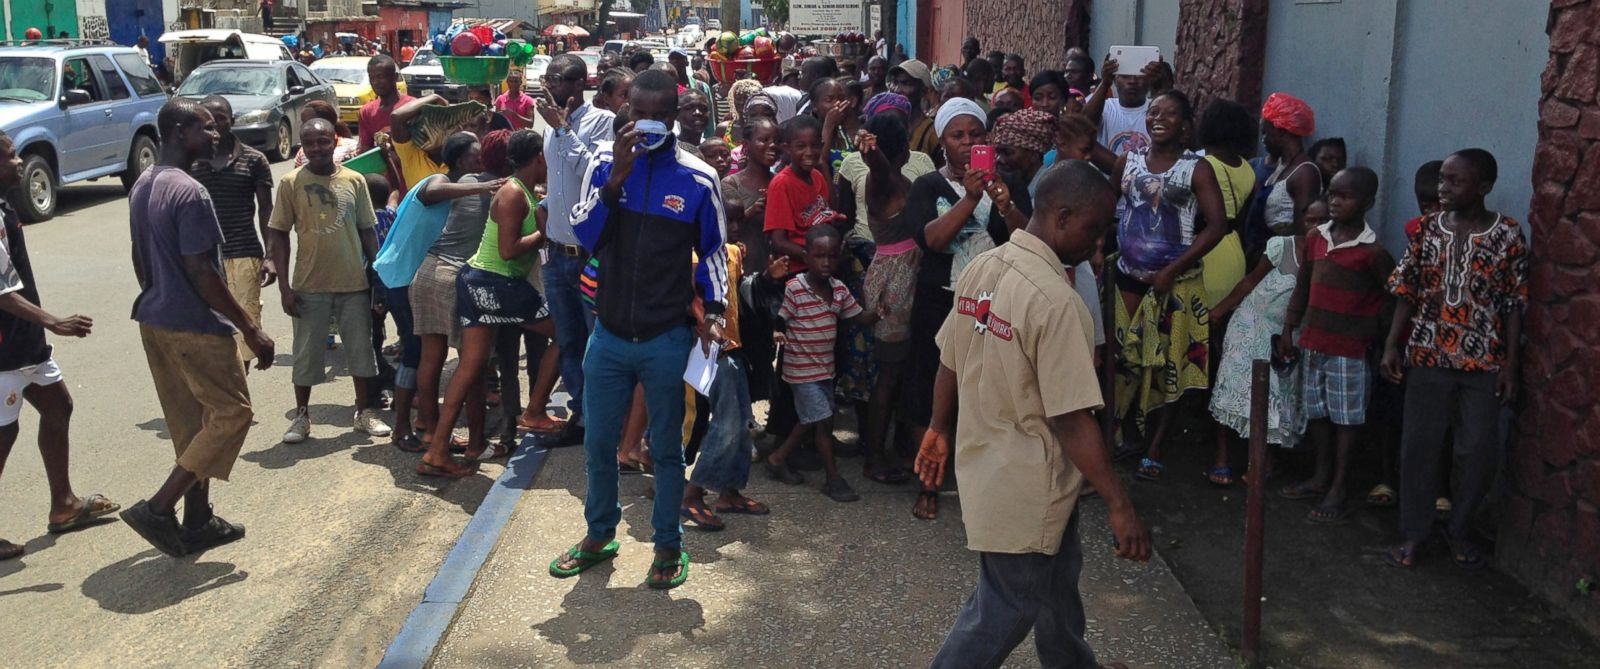 PHOTO: A crowd watches as a burial team discovers a man thought to be dead was actually alive in Liberia on Oct. 2, 2014.